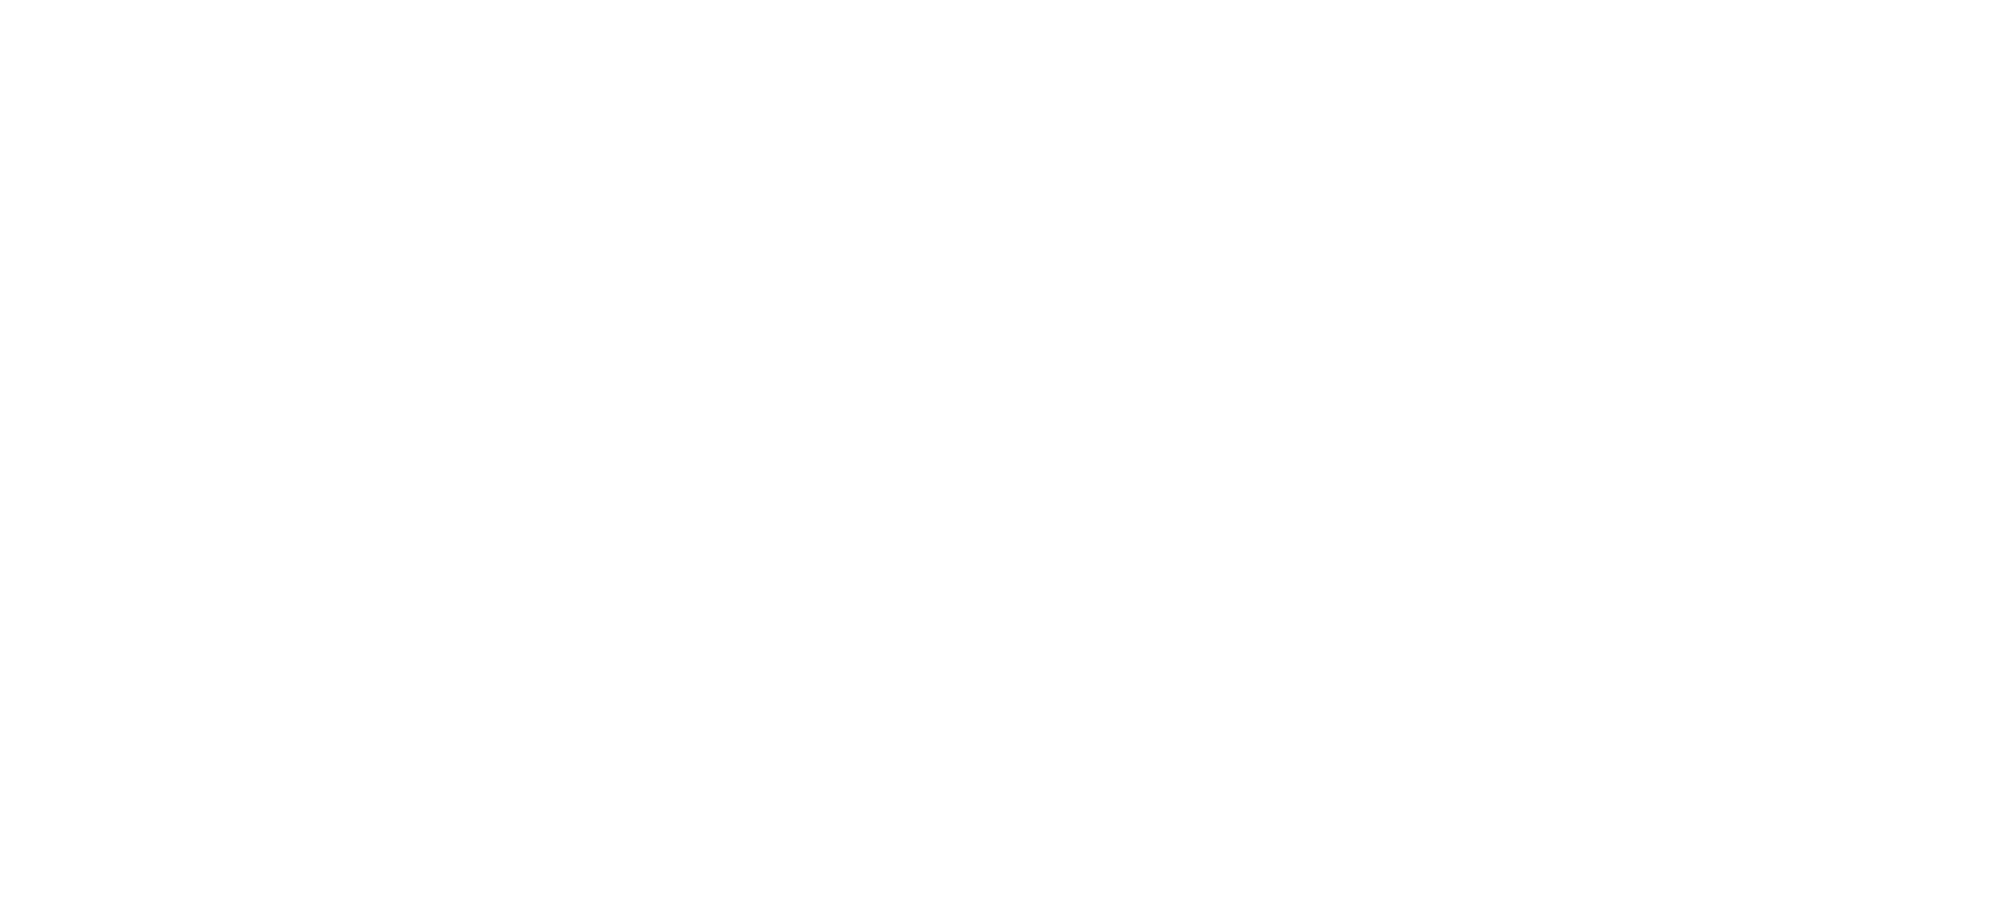 Green_Product_Award_second_2013_white